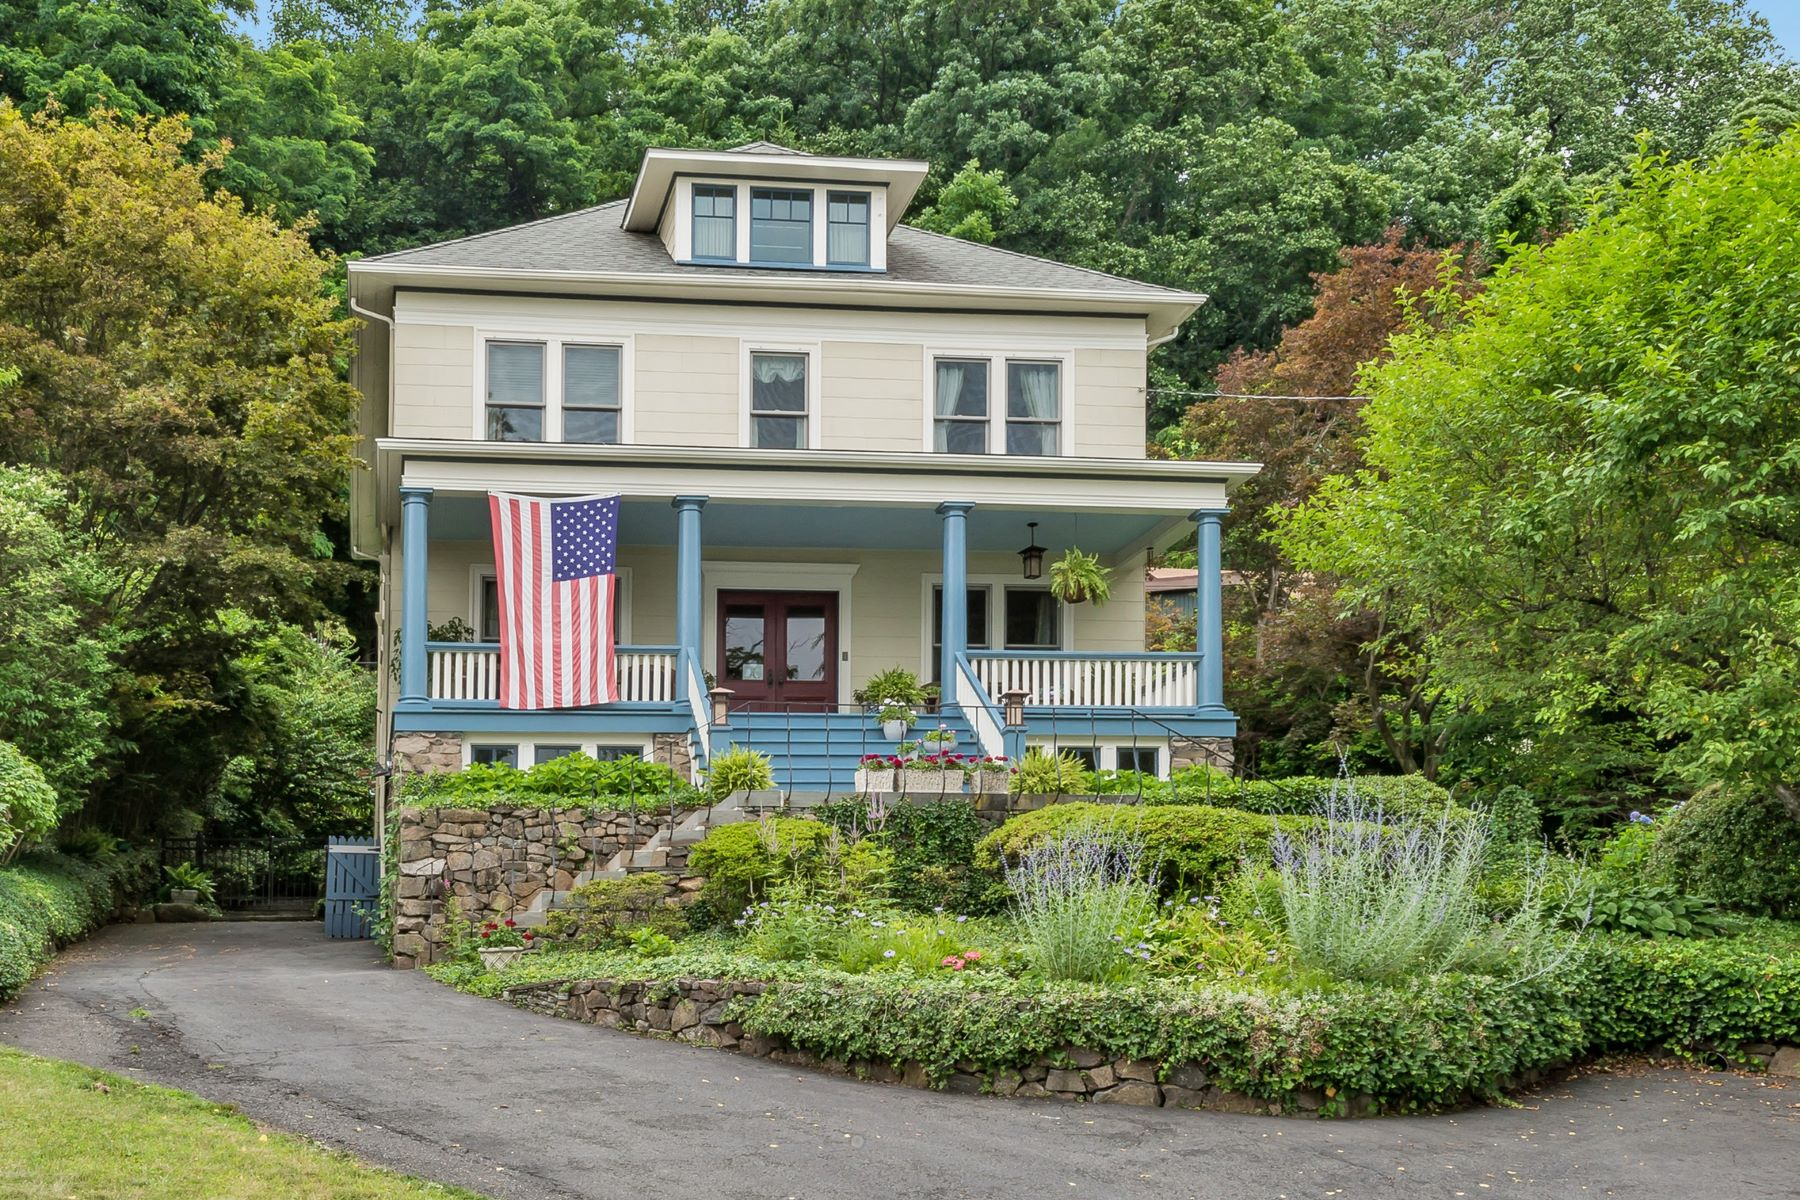 Single Family Home for Sale at Botanical Oasis By the River 285 River Road Grandview, New York 10960 United States